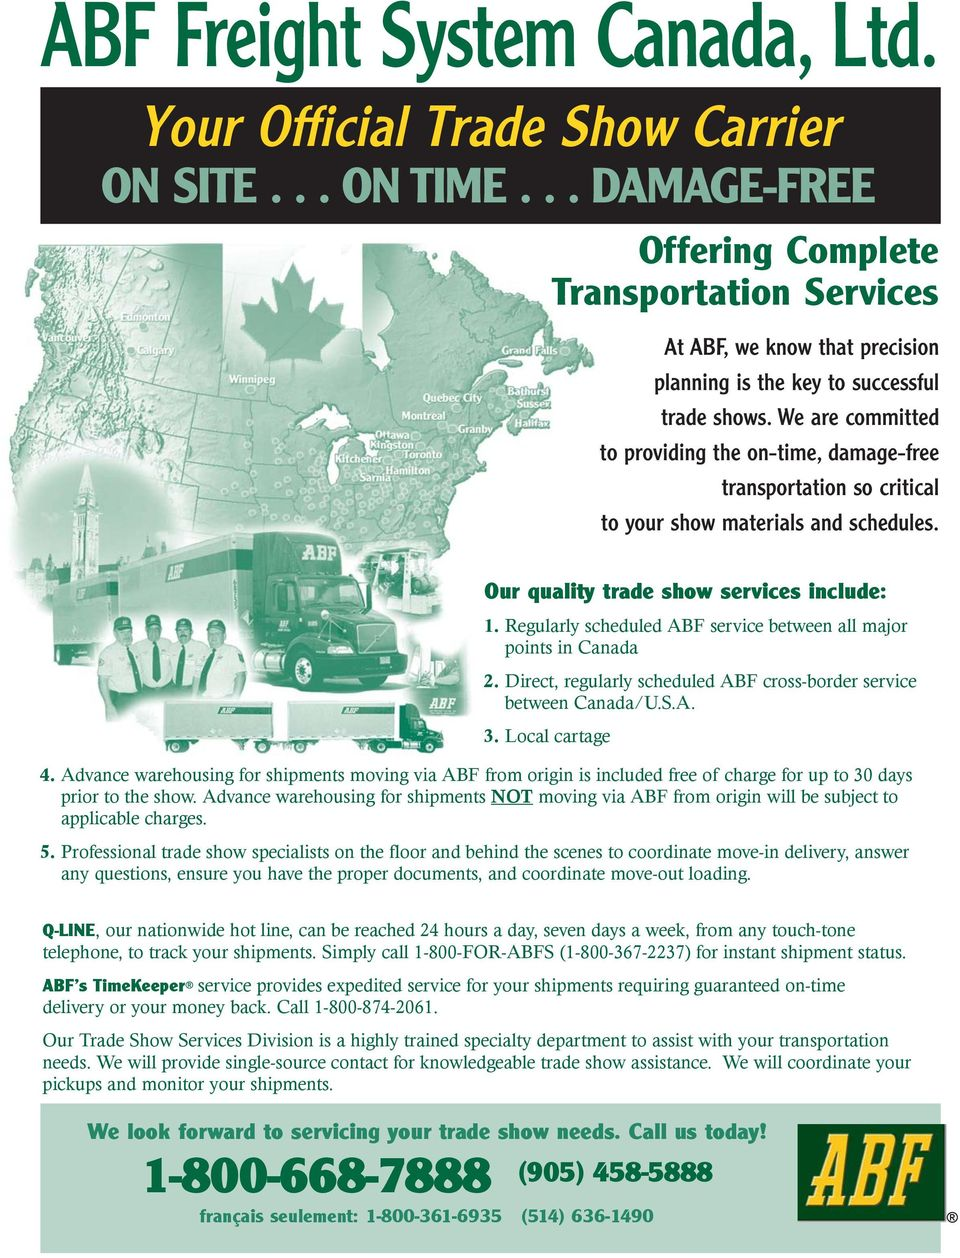 Regularly scheduled ABF service between all major points in Canada 2. Direct, regularly scheduled ABF cross-border service between Canada/U.S.A. 3. Local cartage 4.